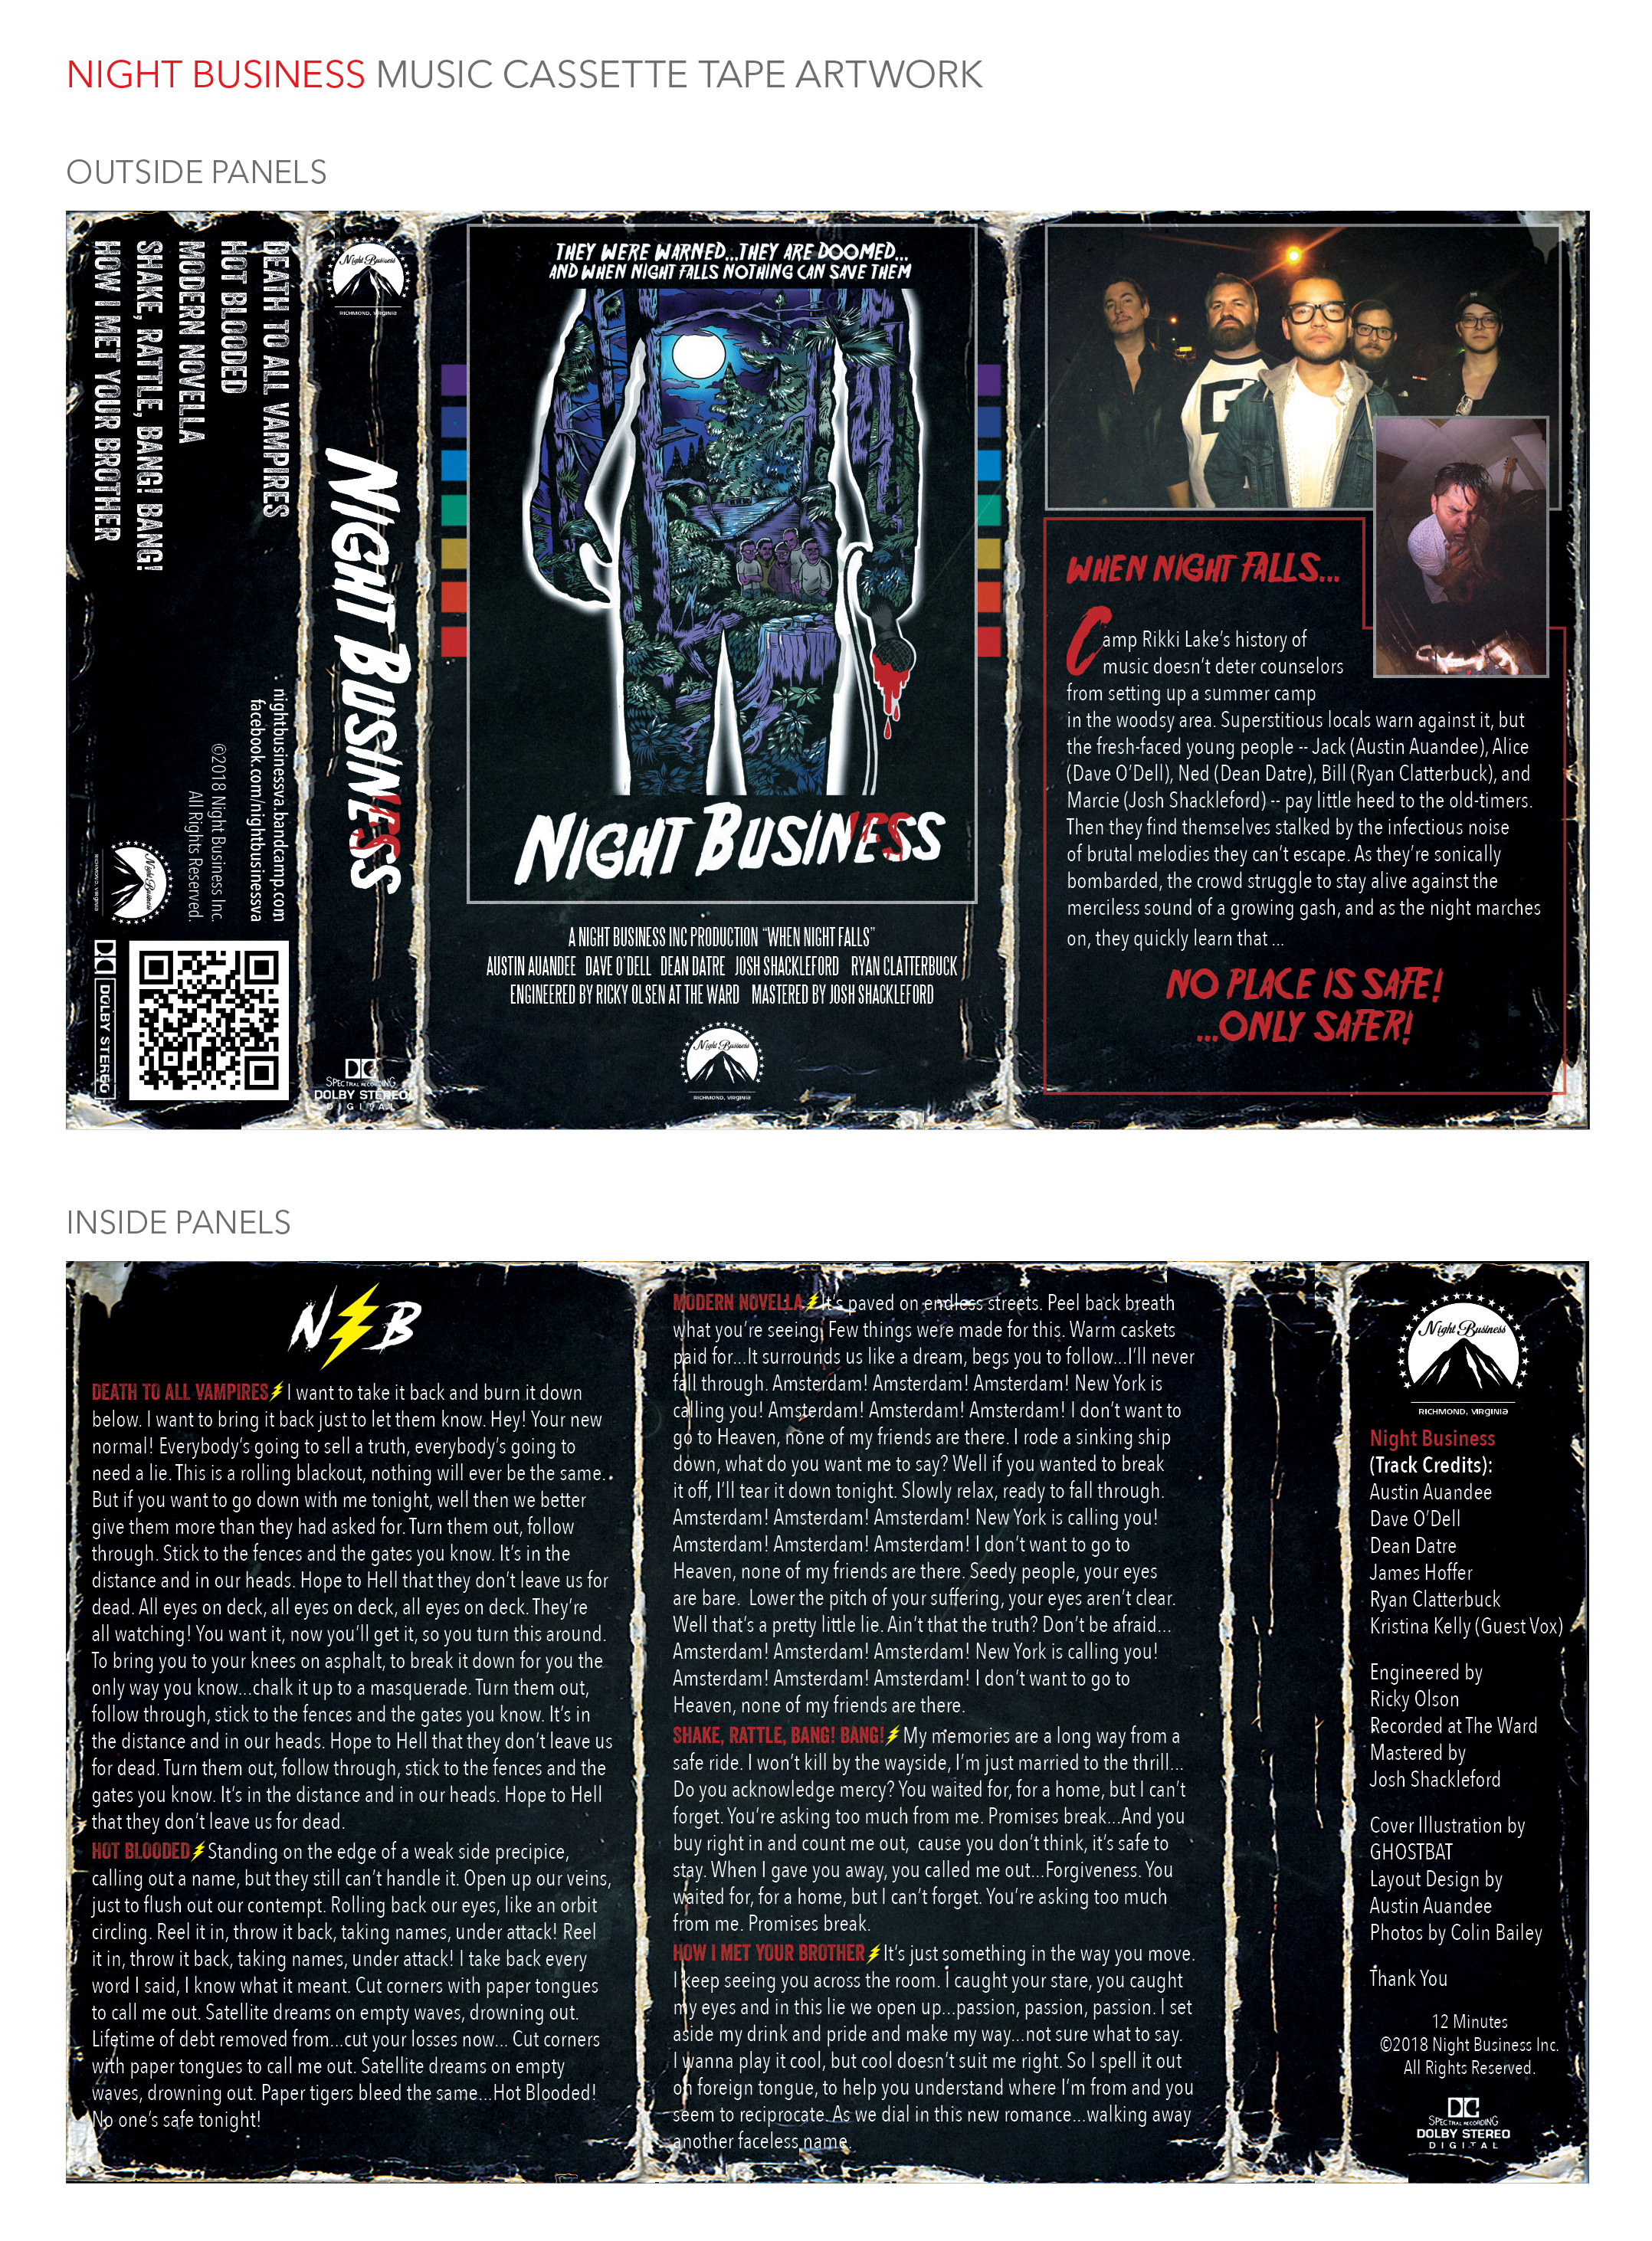 Night Business - Cassette Art - Presentation.jpg